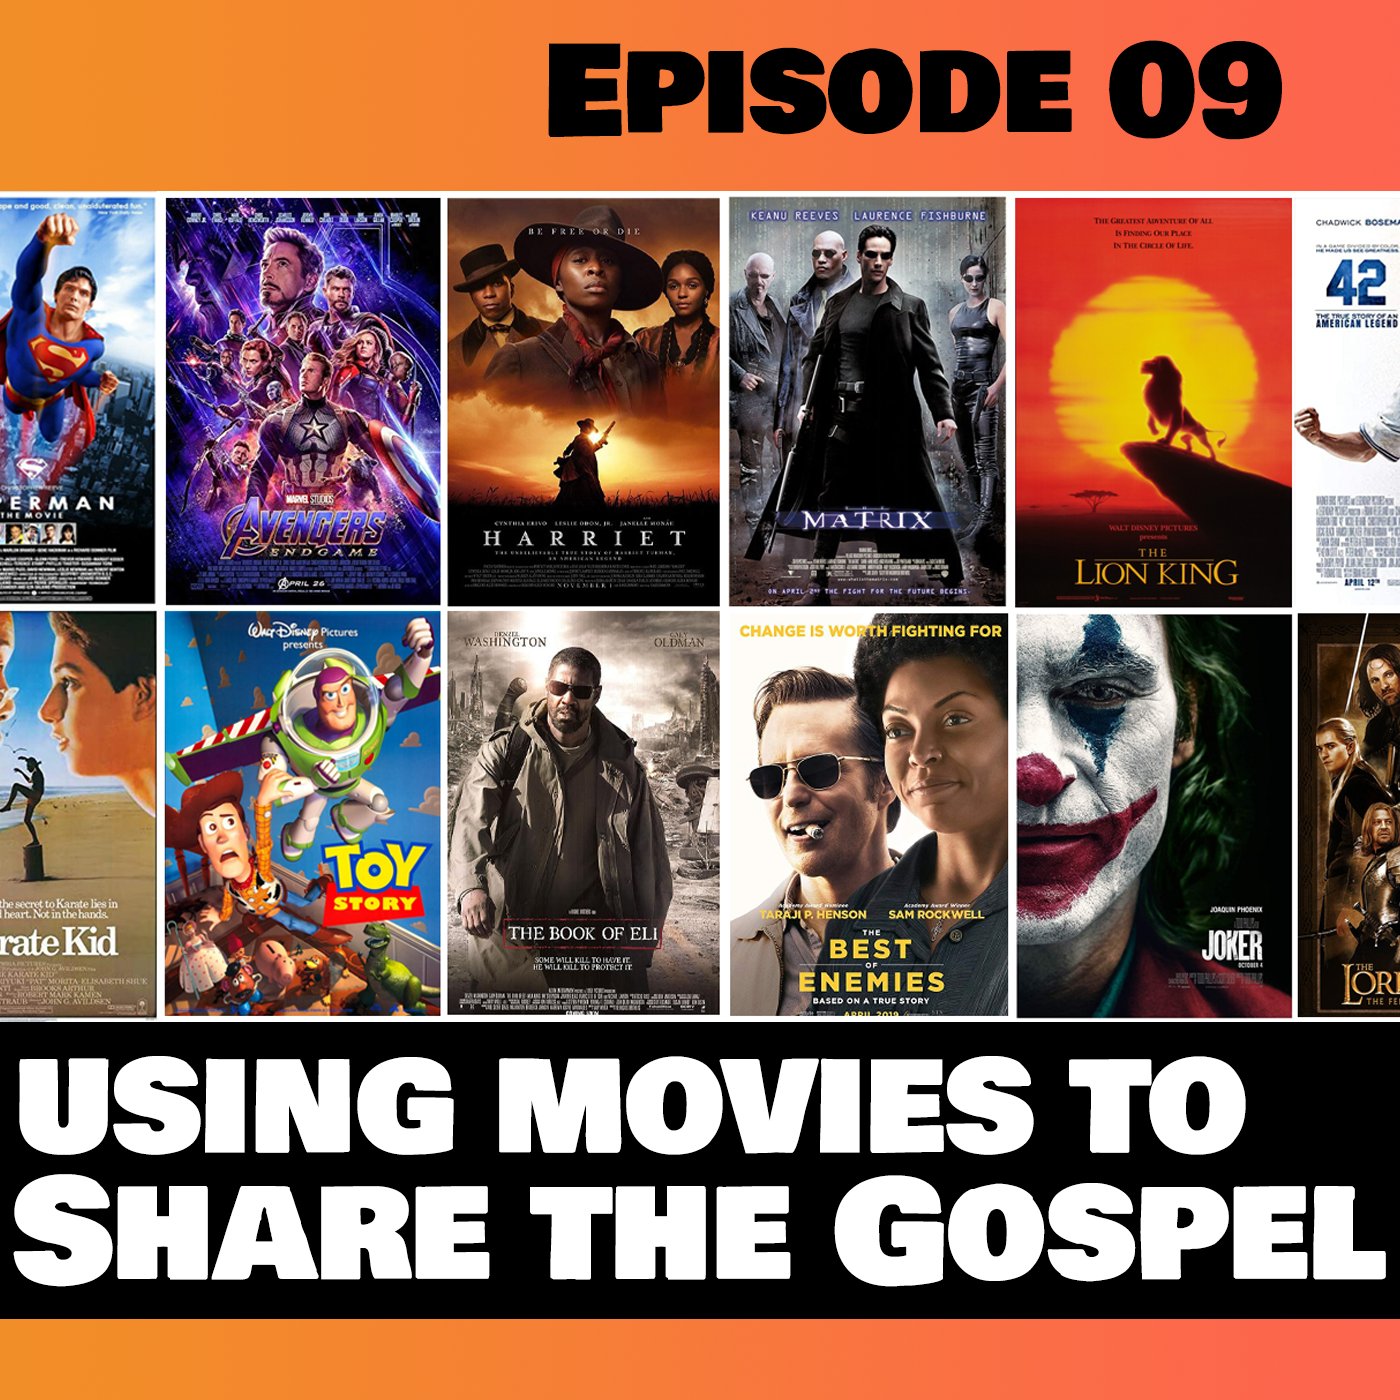 Using Movies to Share the Gospel